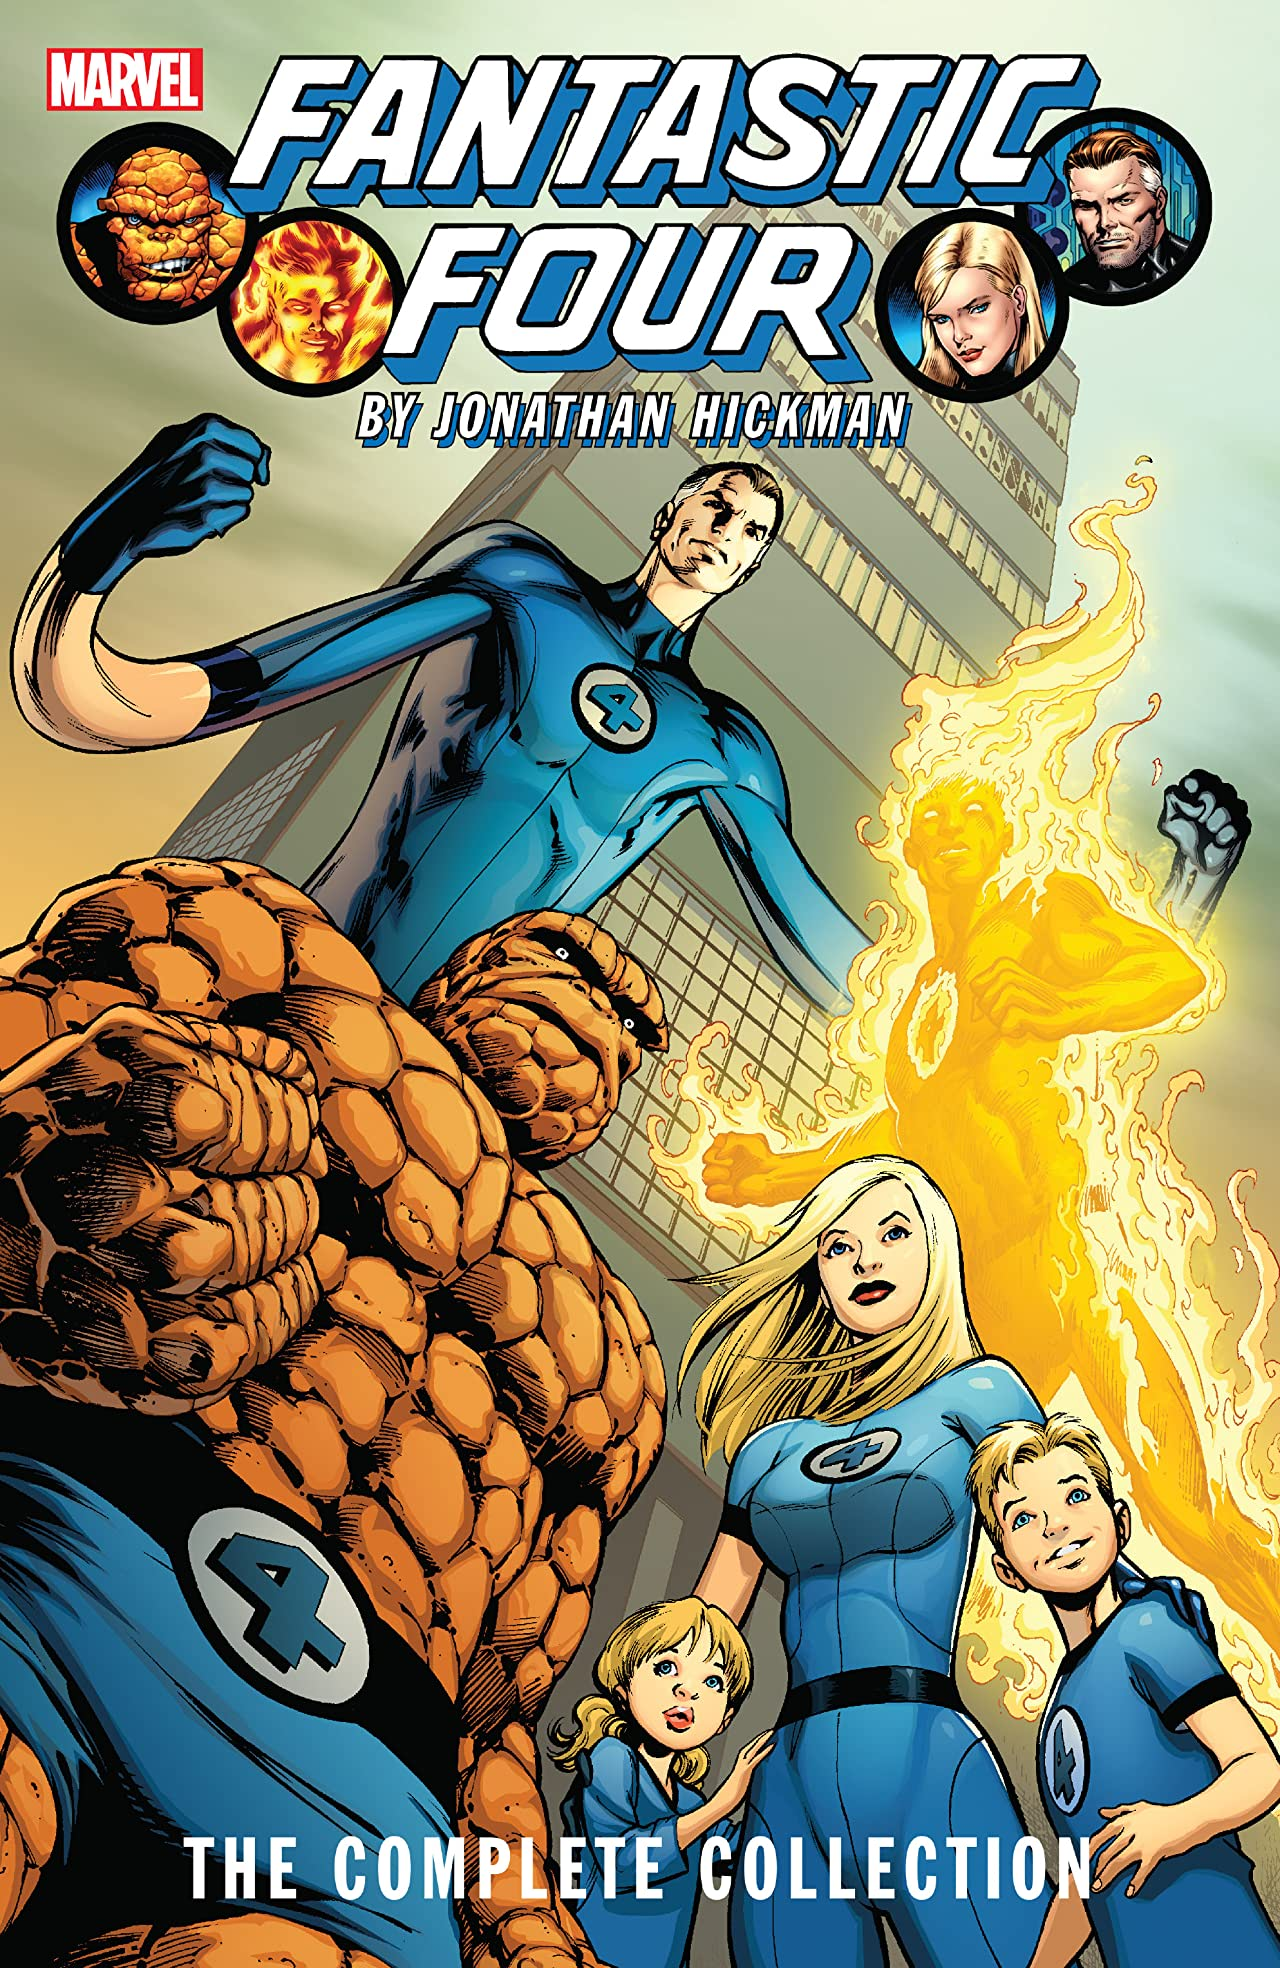 Fantastic Four By Jonathan Hickman: The Complete Collection Vol. 1